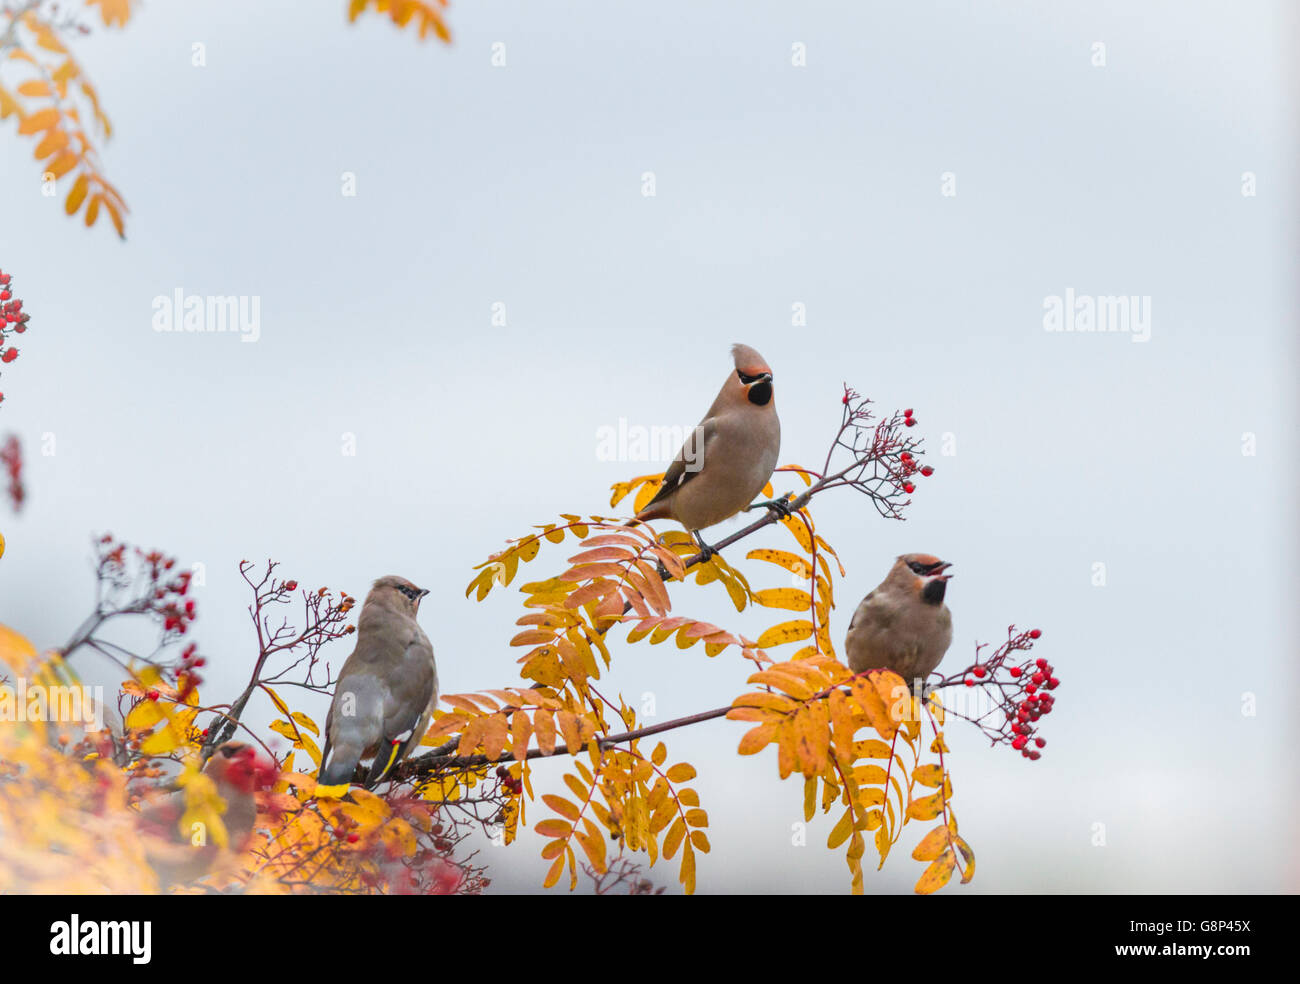 Three Waxwings sitting in a Rowan tree with berries on it and leaves are in autumn color yellow, Gällivare, - Stock Image